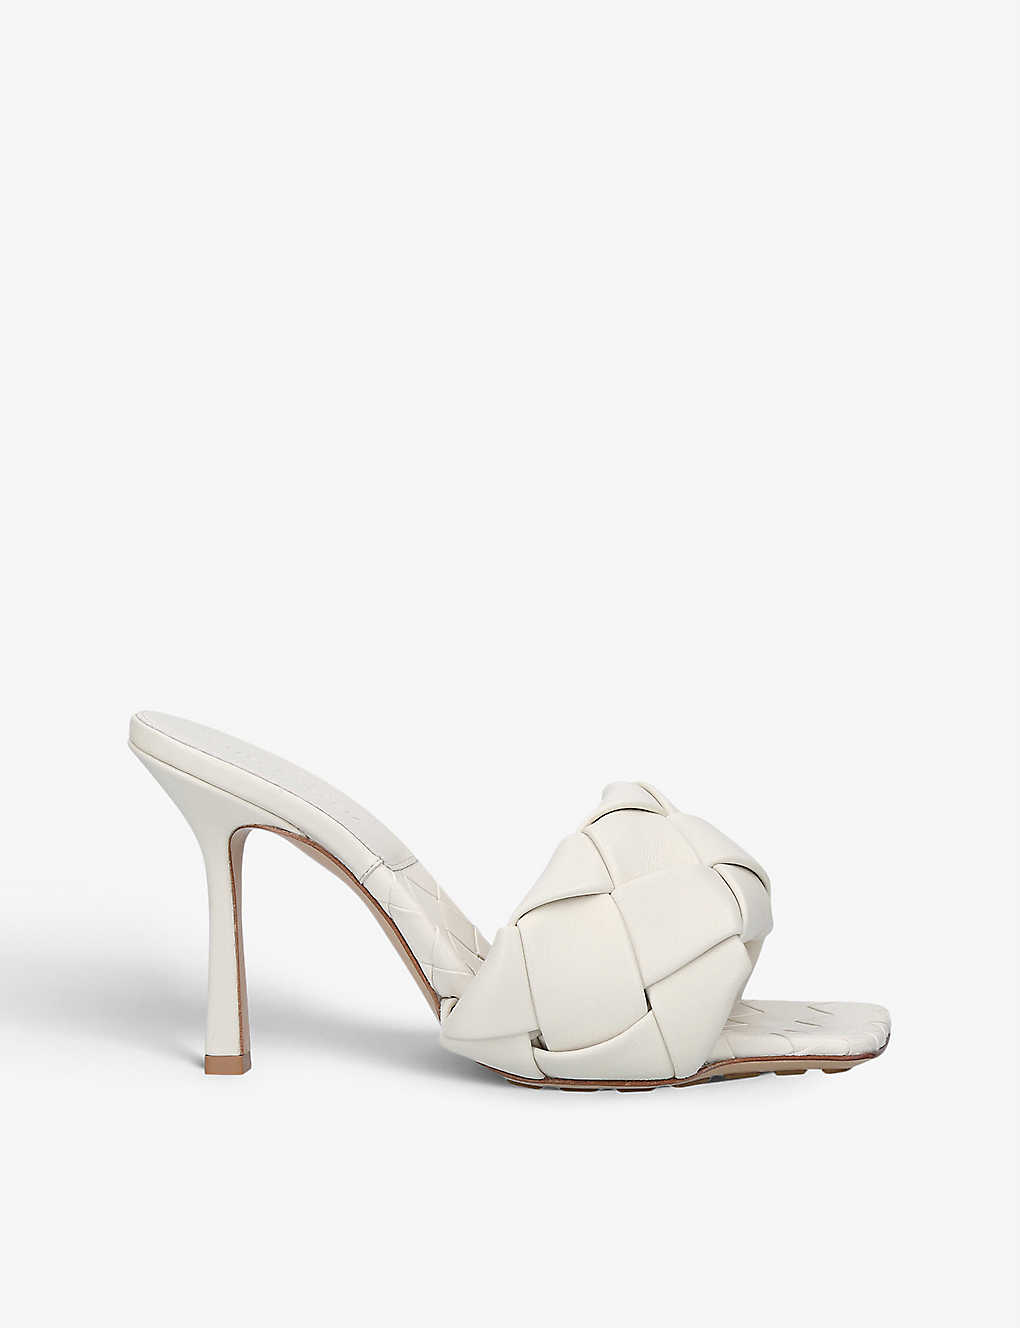 BOTTEGA VENETA: Intrecciato leather heeled mules